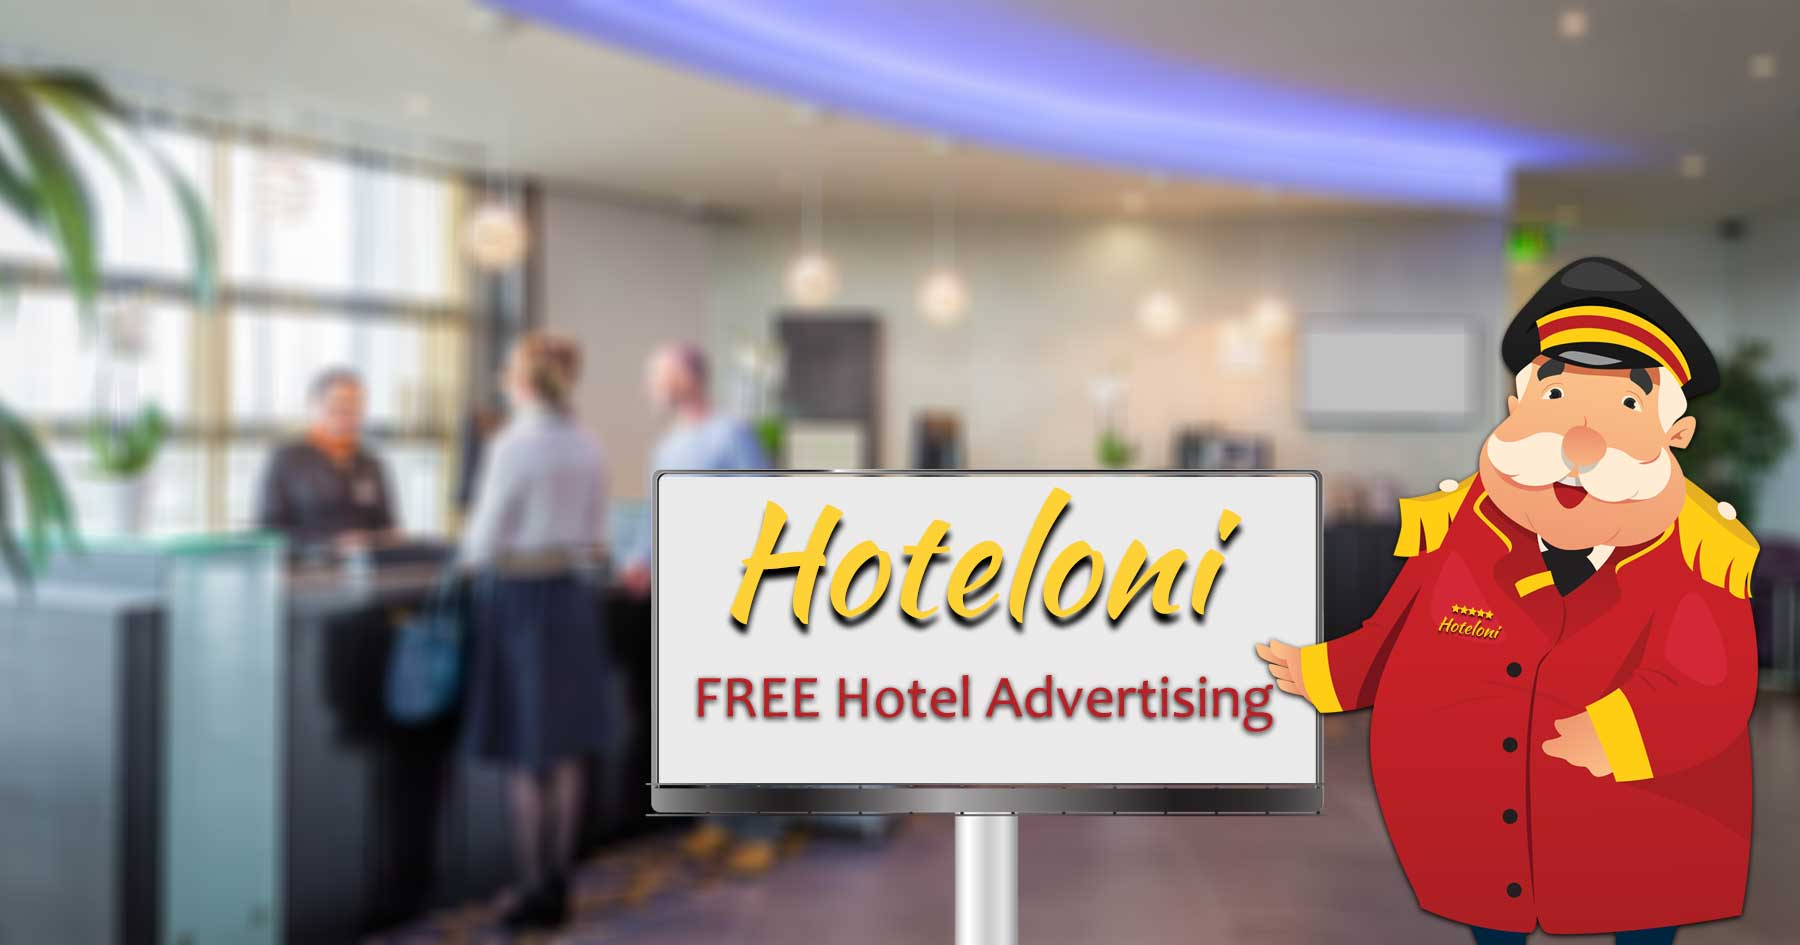 Hoteloni Content Management System for the Hospitality Business